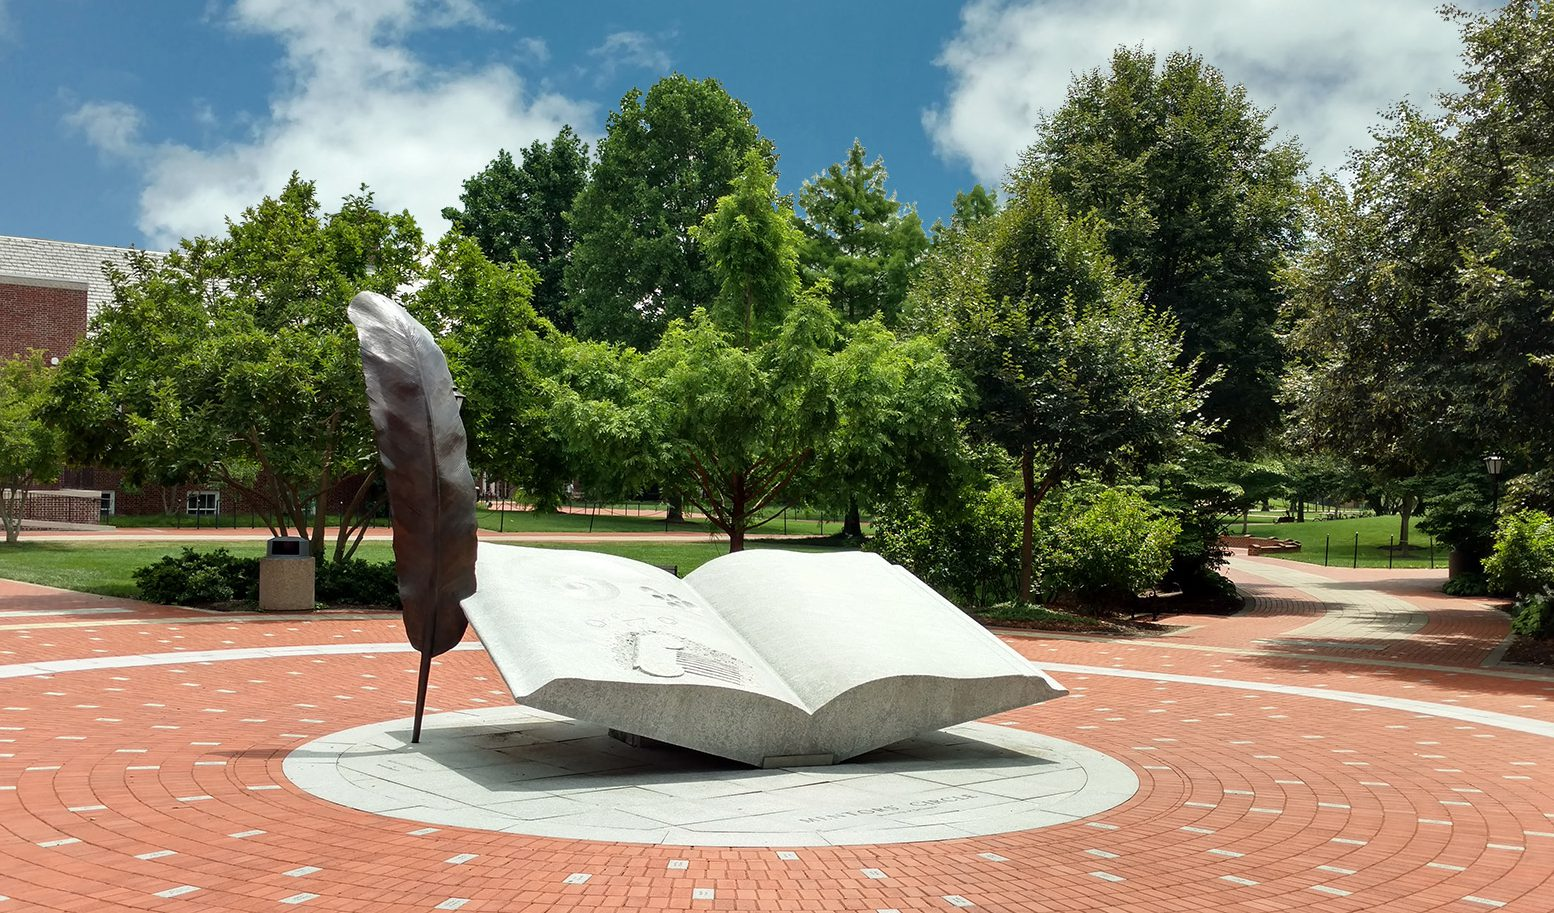 ud-book-statue-the-green-delaware-discovery-days